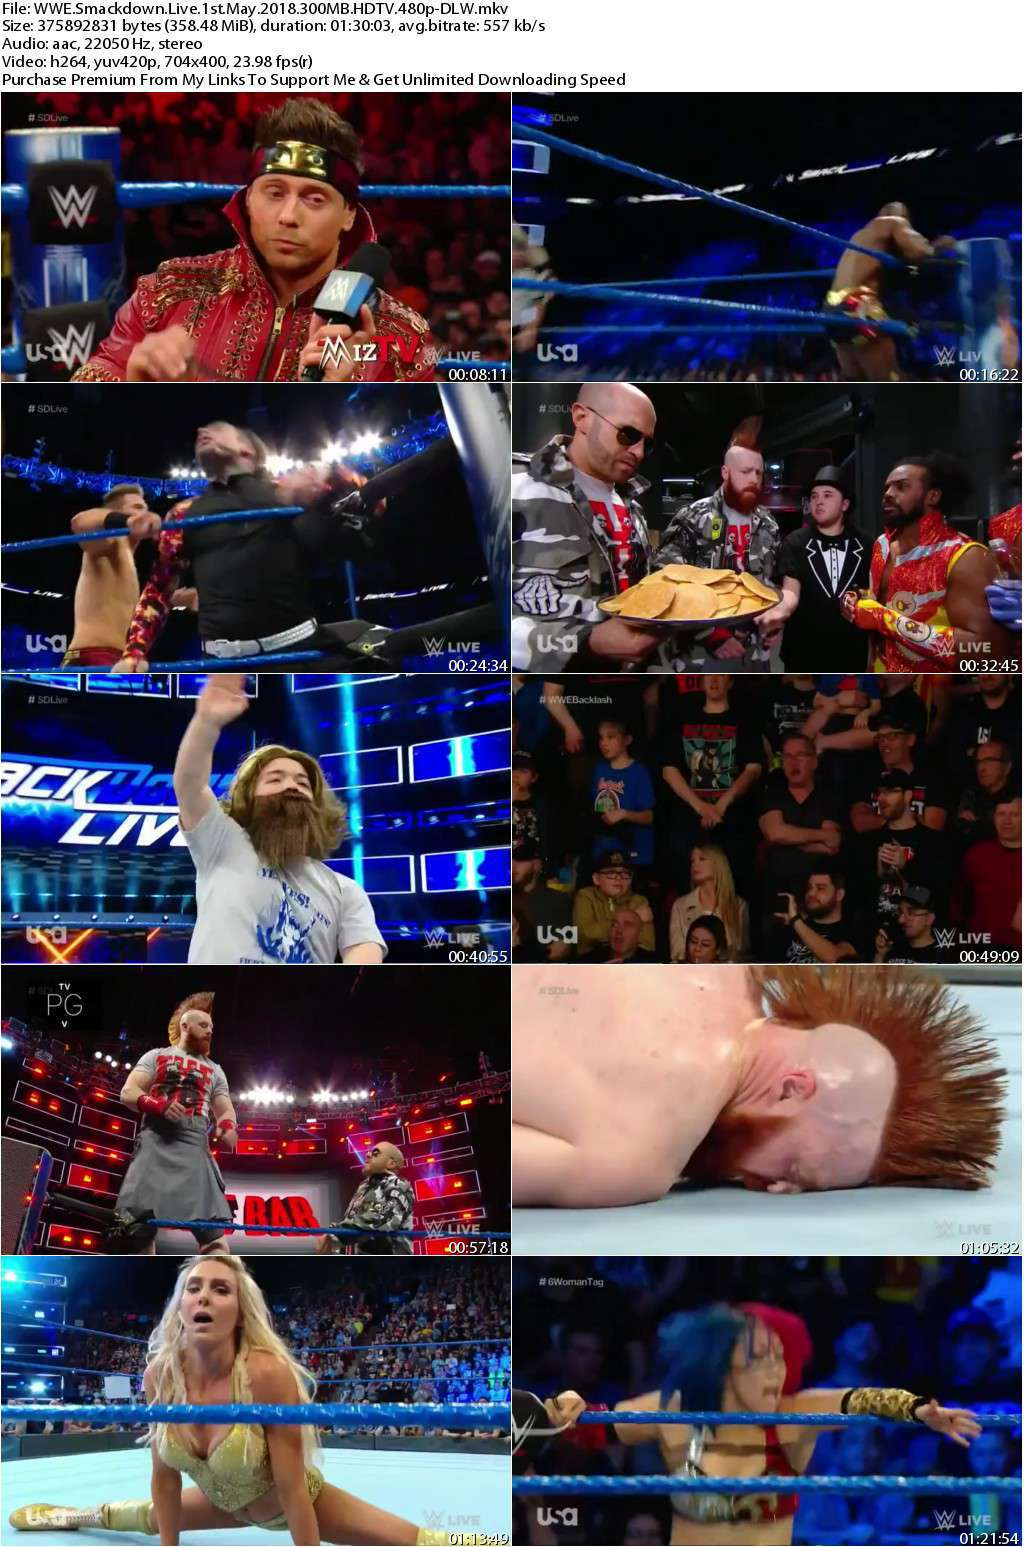 WWE Smackdown Live 1st May 2018 300MB HDTV 480p-DLW